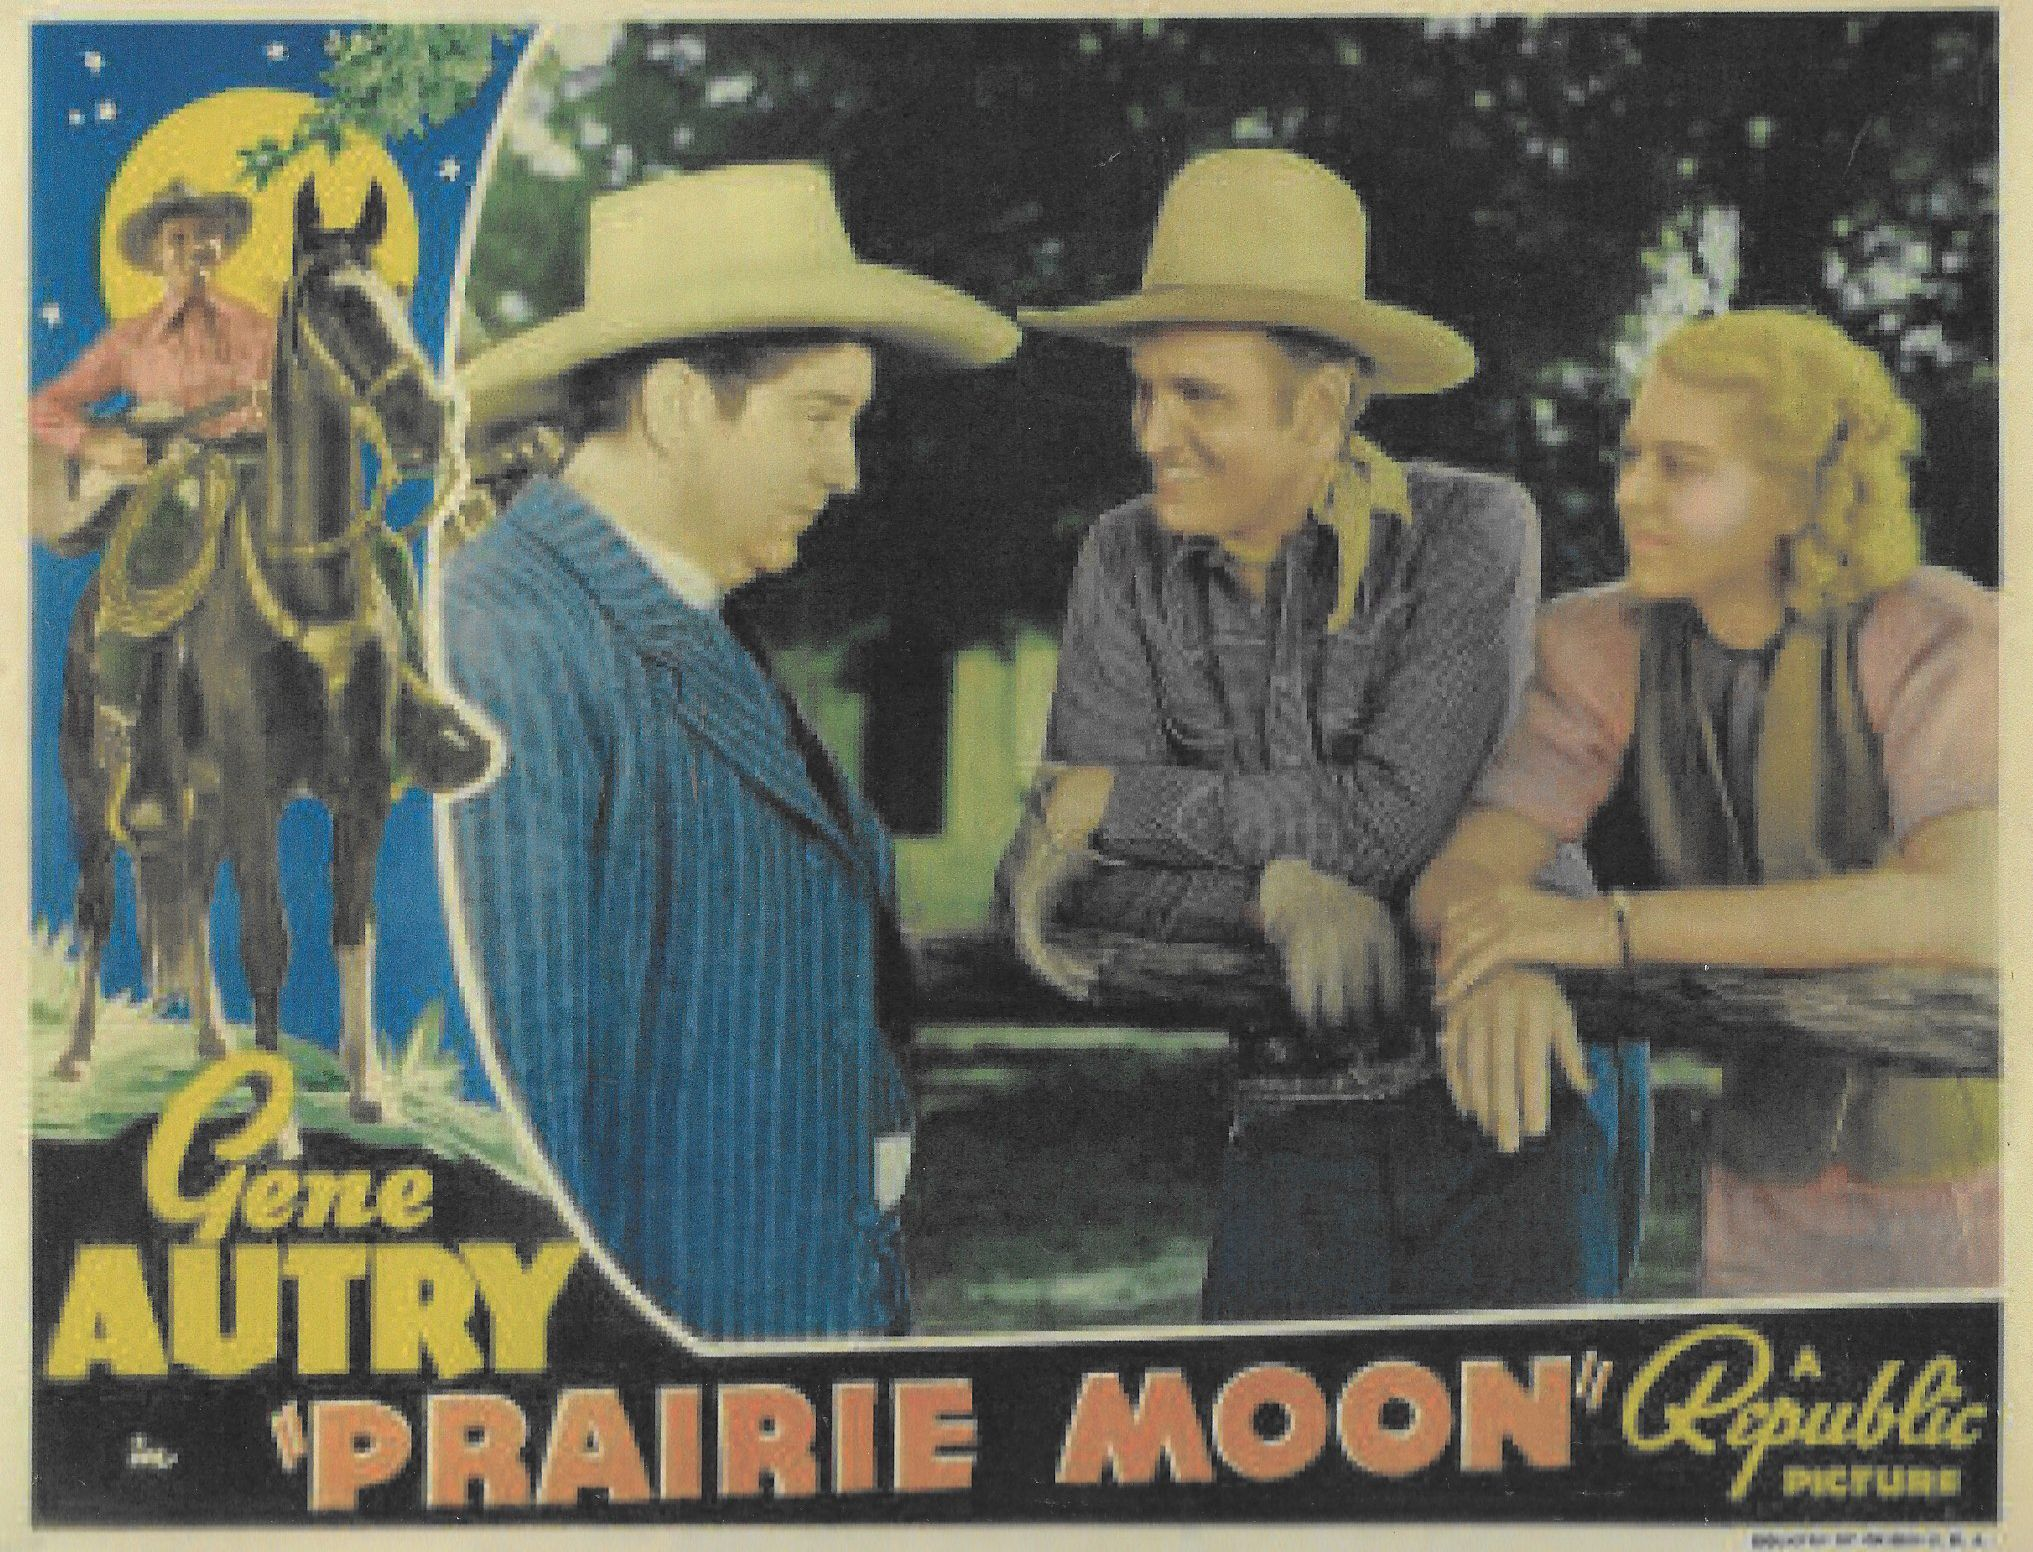 Gene Autry, Smiley Burnette, Shirley Deane, and Champion in Prairie Moon (1938)